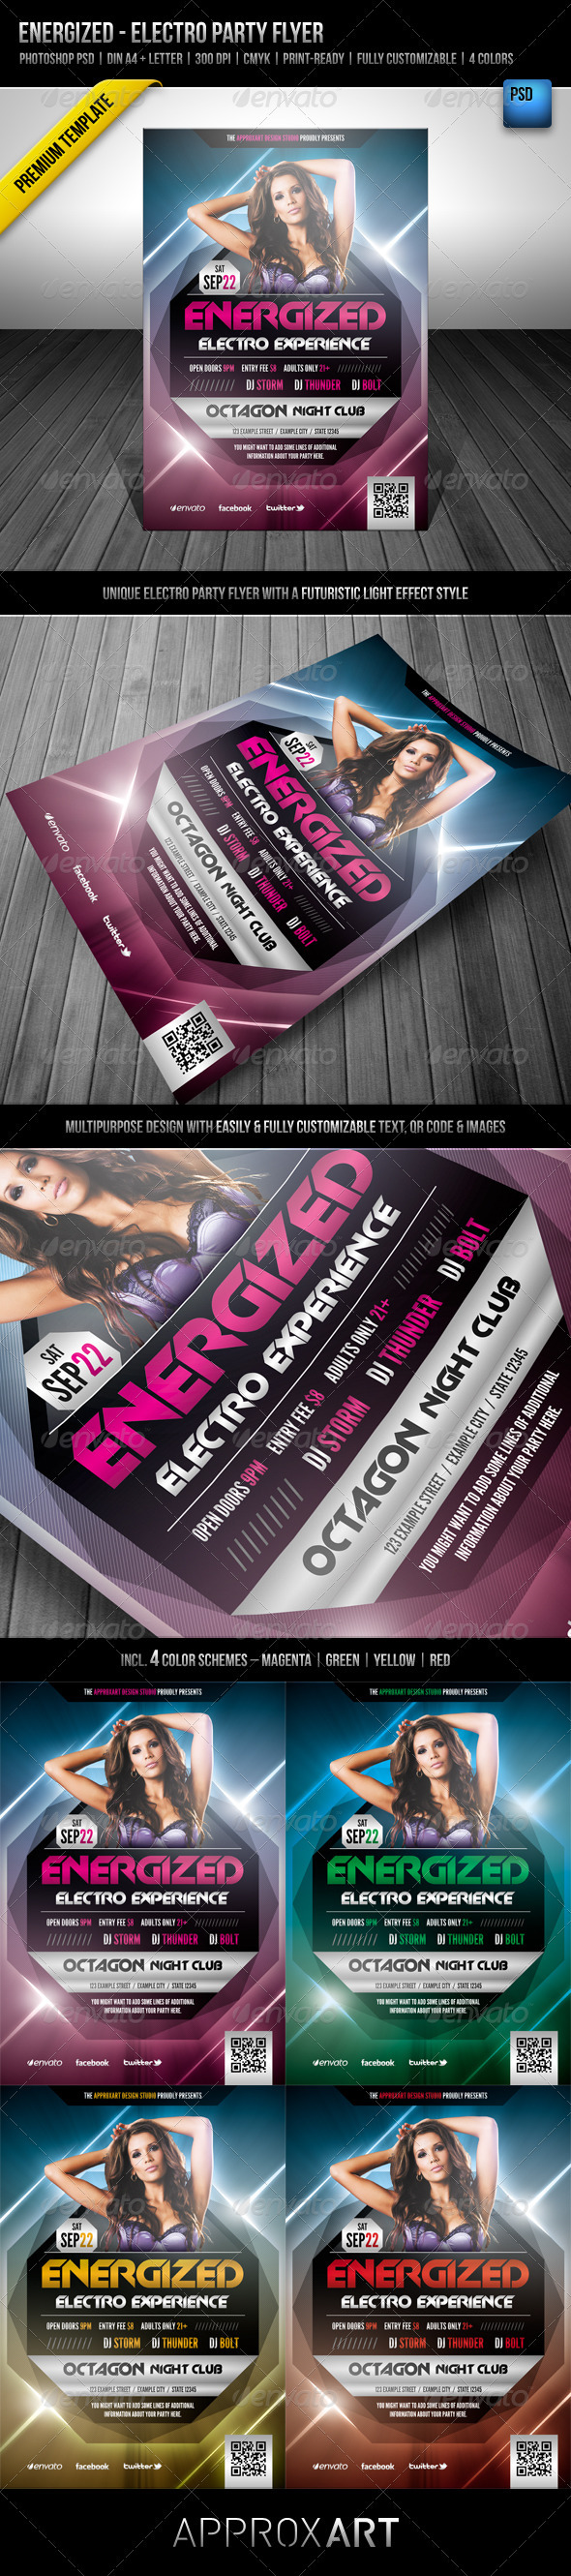 Energized - Electro Party Flyer - Clubs &amp; Parties Events